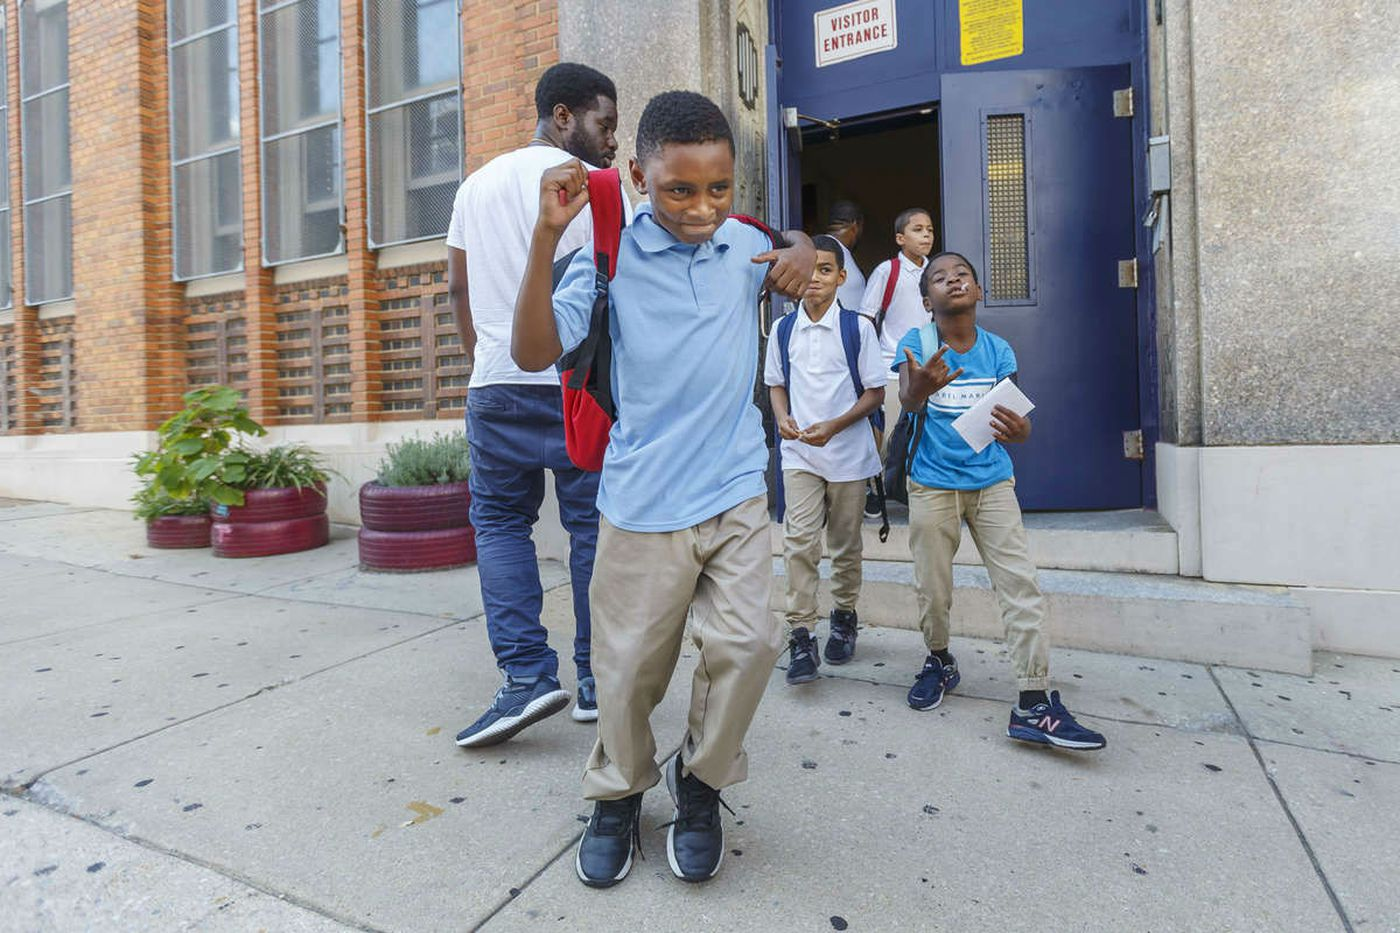 Philly schools to close early Wednesday; officials decry 'dangerous' conditions inside schools